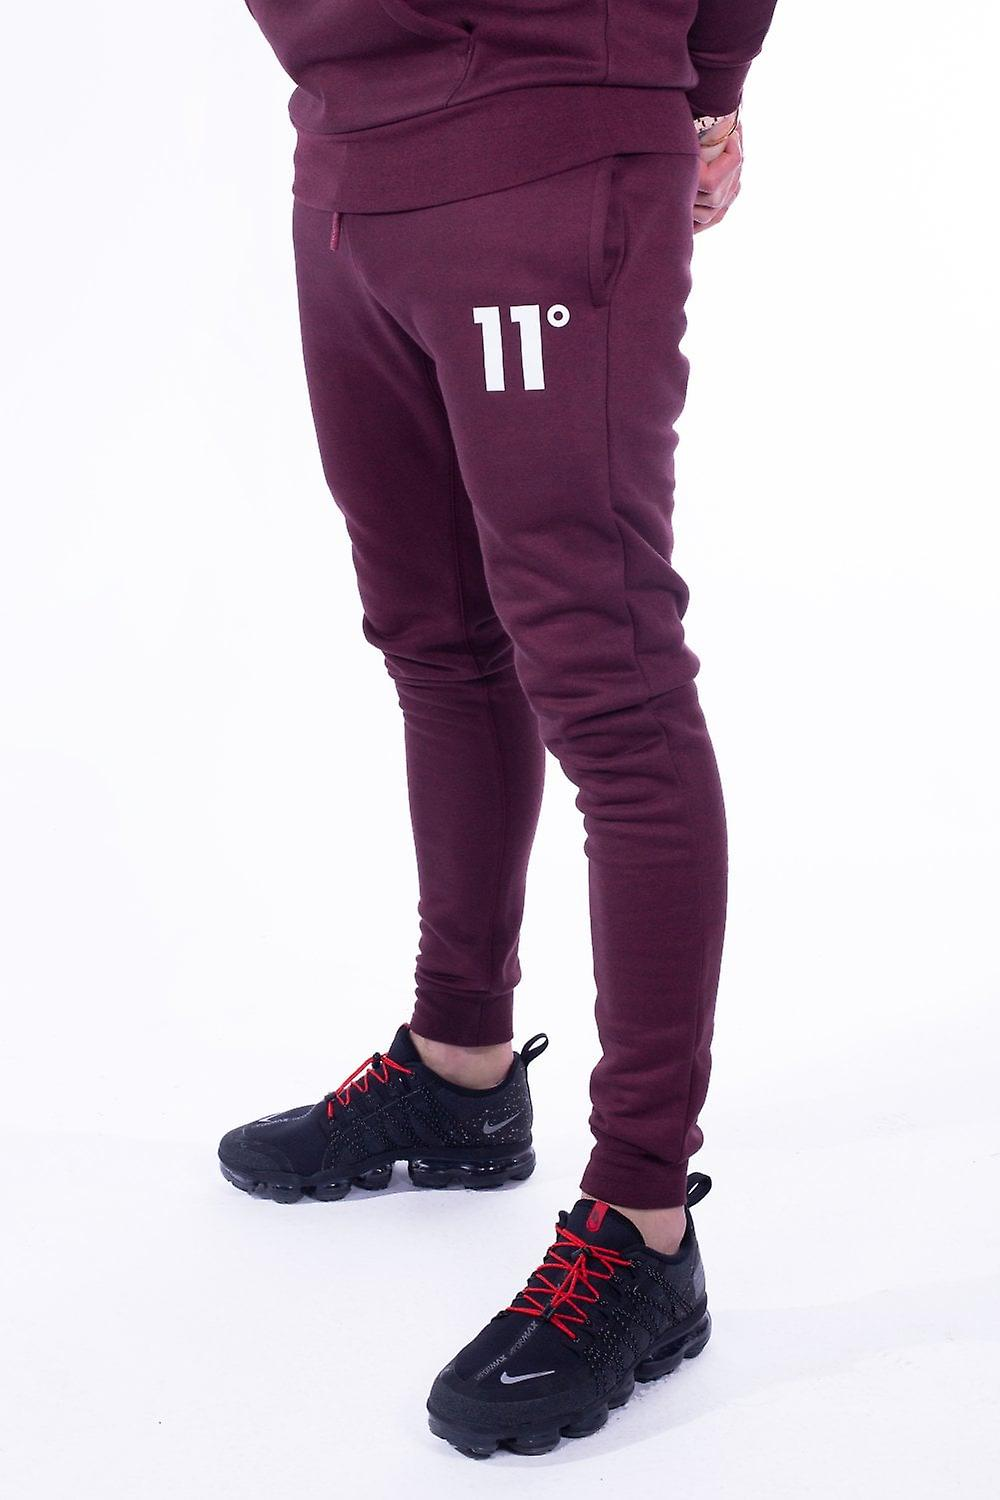 11 Degrees Core Skinny Joggers - Ruby Marl